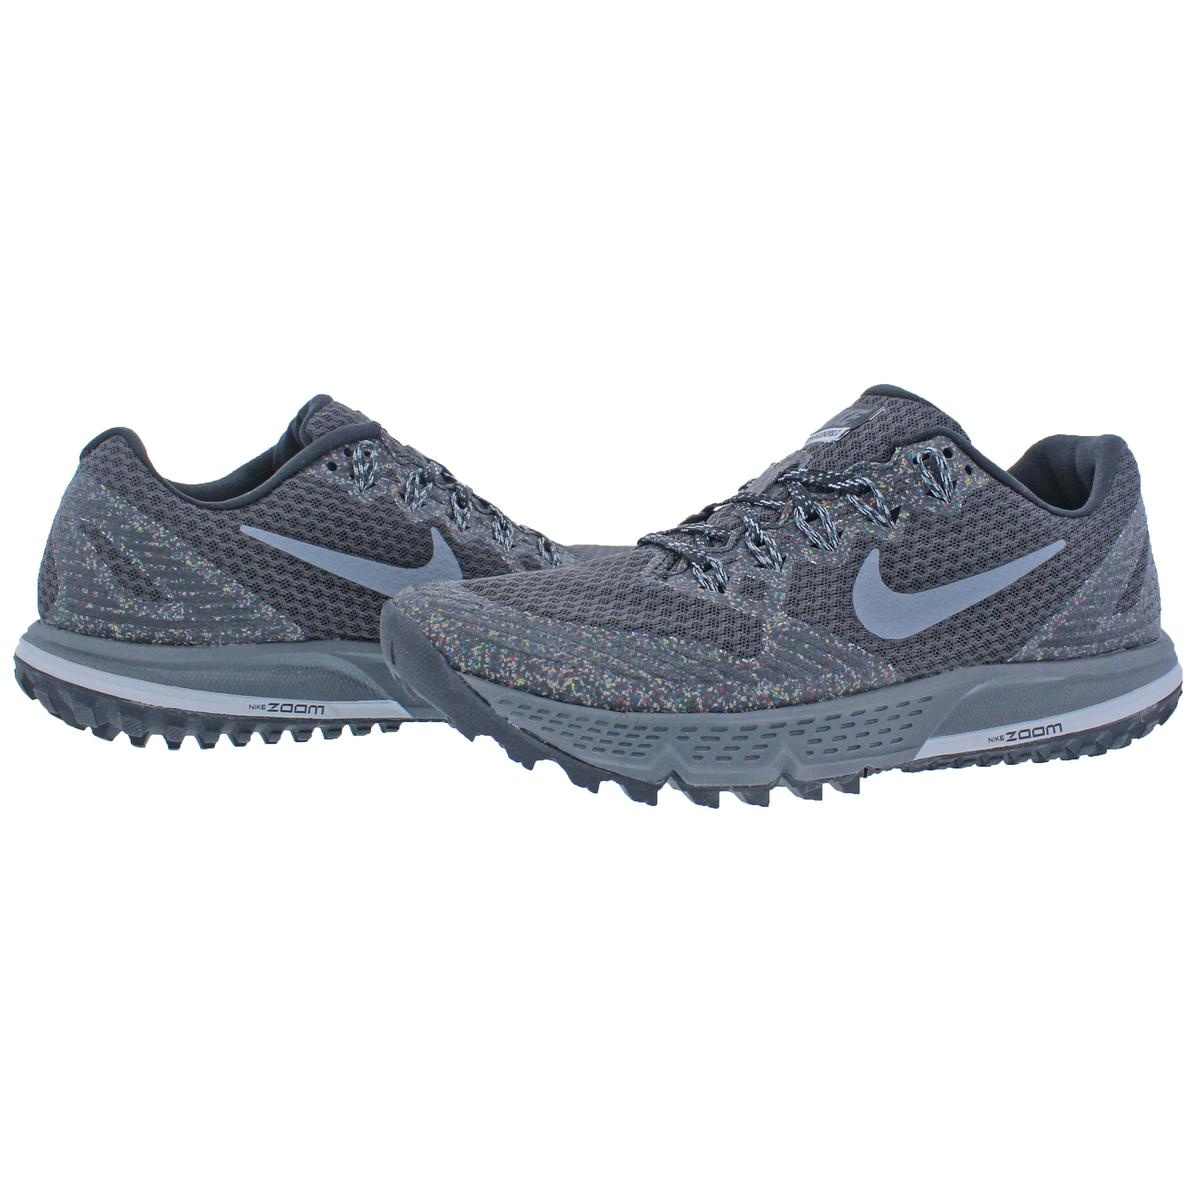 3c102557218 Details about Nike Mens Air Zoom Wildhorse 3 Black Trail Running Shoes 6  Medium (D) BHFO 2301